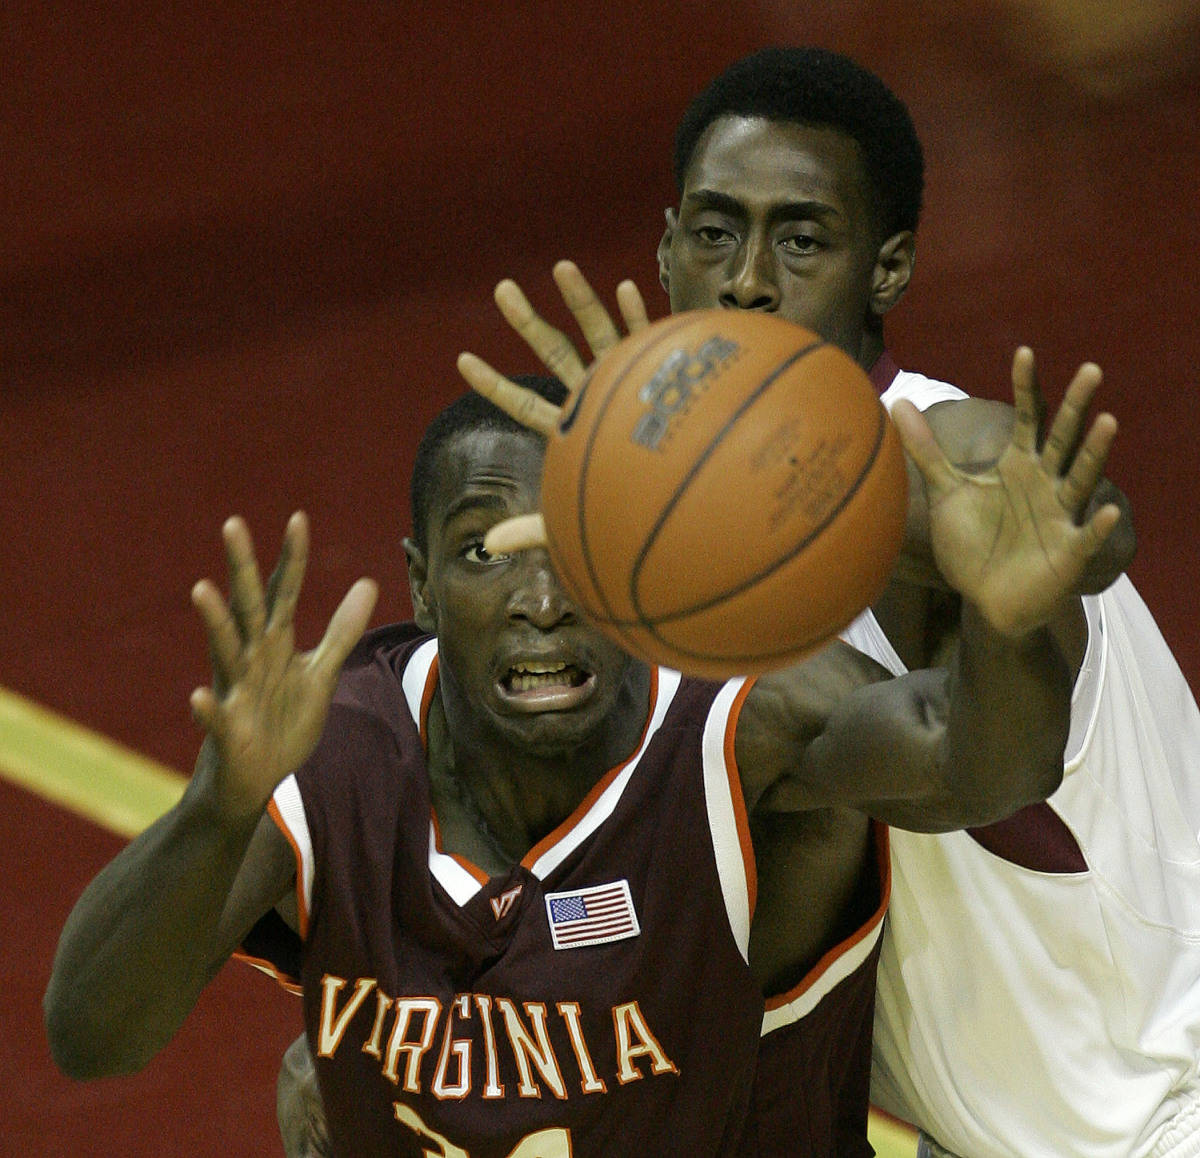 Virginia Tech's Cheick Diakite, left, and Florida State's Casaan Breeden, right, go for the ball during the first half of a college basketball game, Wednesday, Jan. 17, 2007, in Tallahassee, Fla.(AP Photo/Phil Coale)